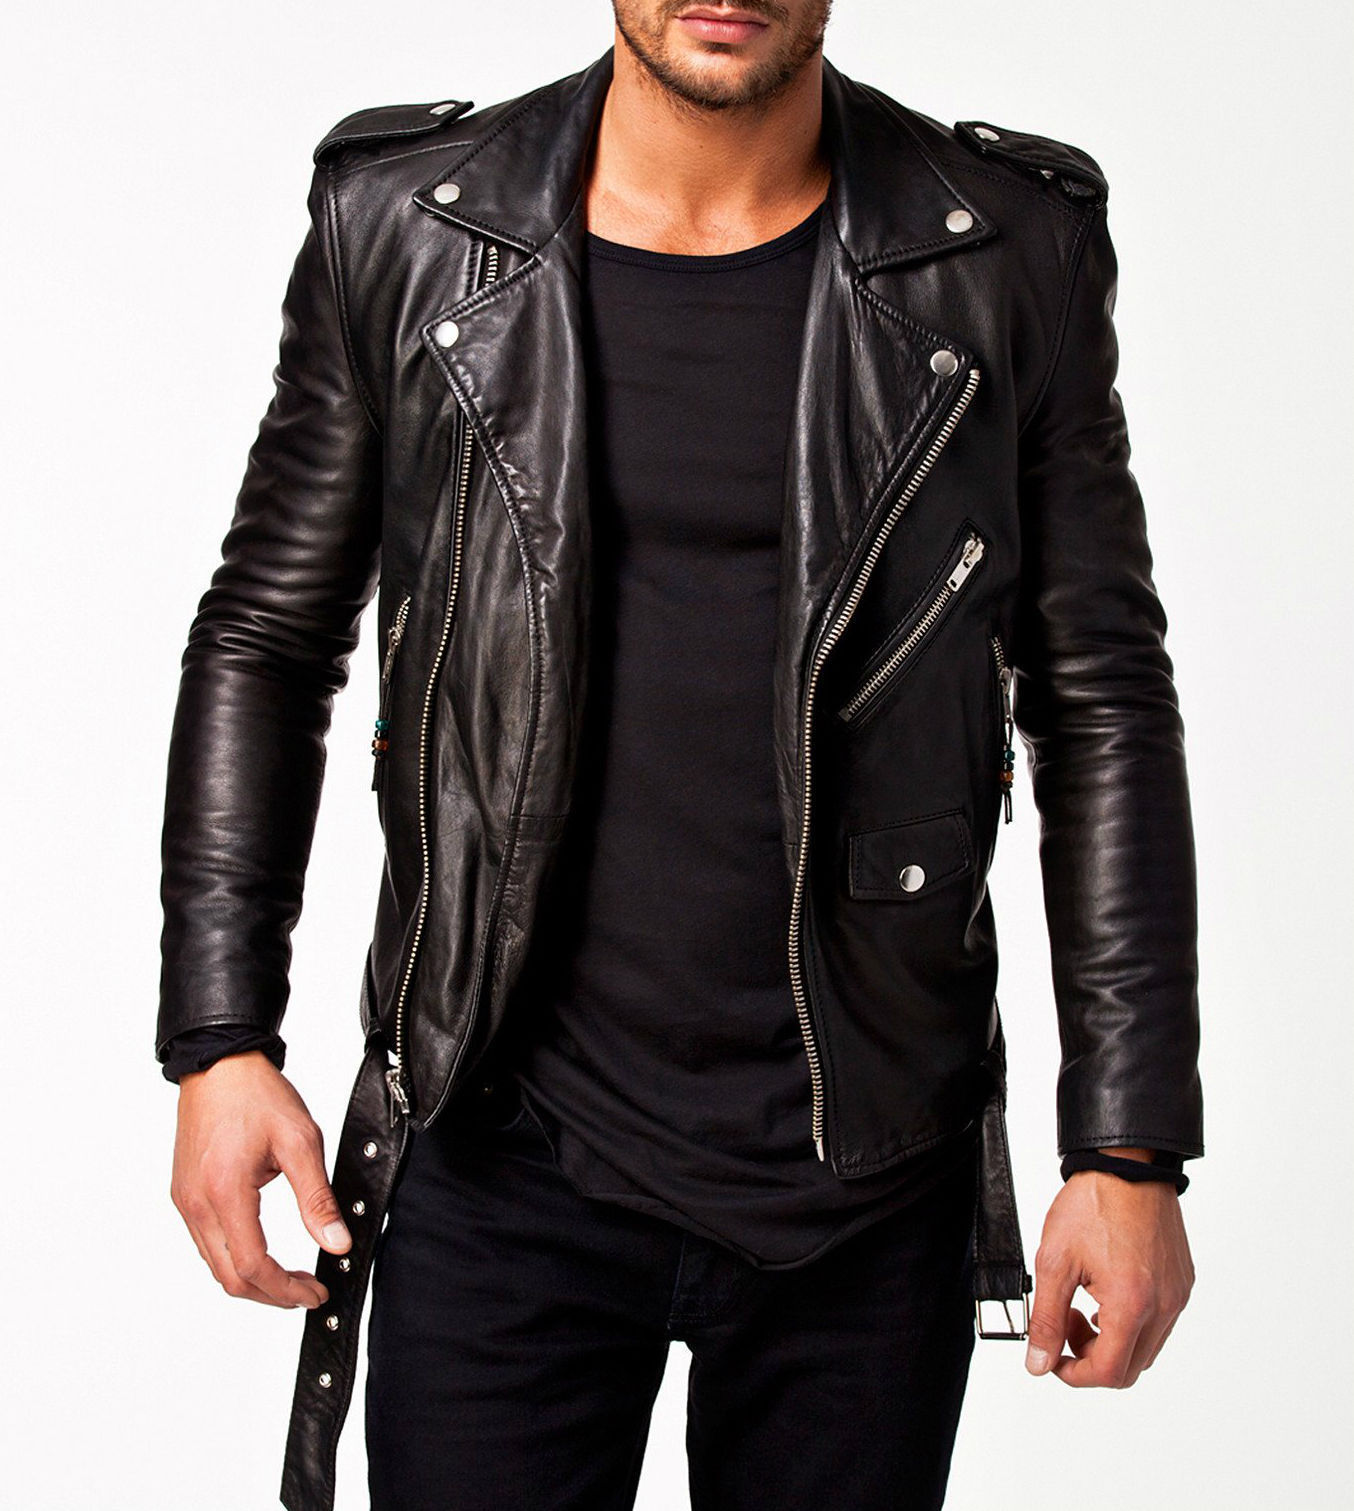 Mens Leather Jacket Black Slim Fit Biker Motorcycle Genuine Lambskin Jacket Moto